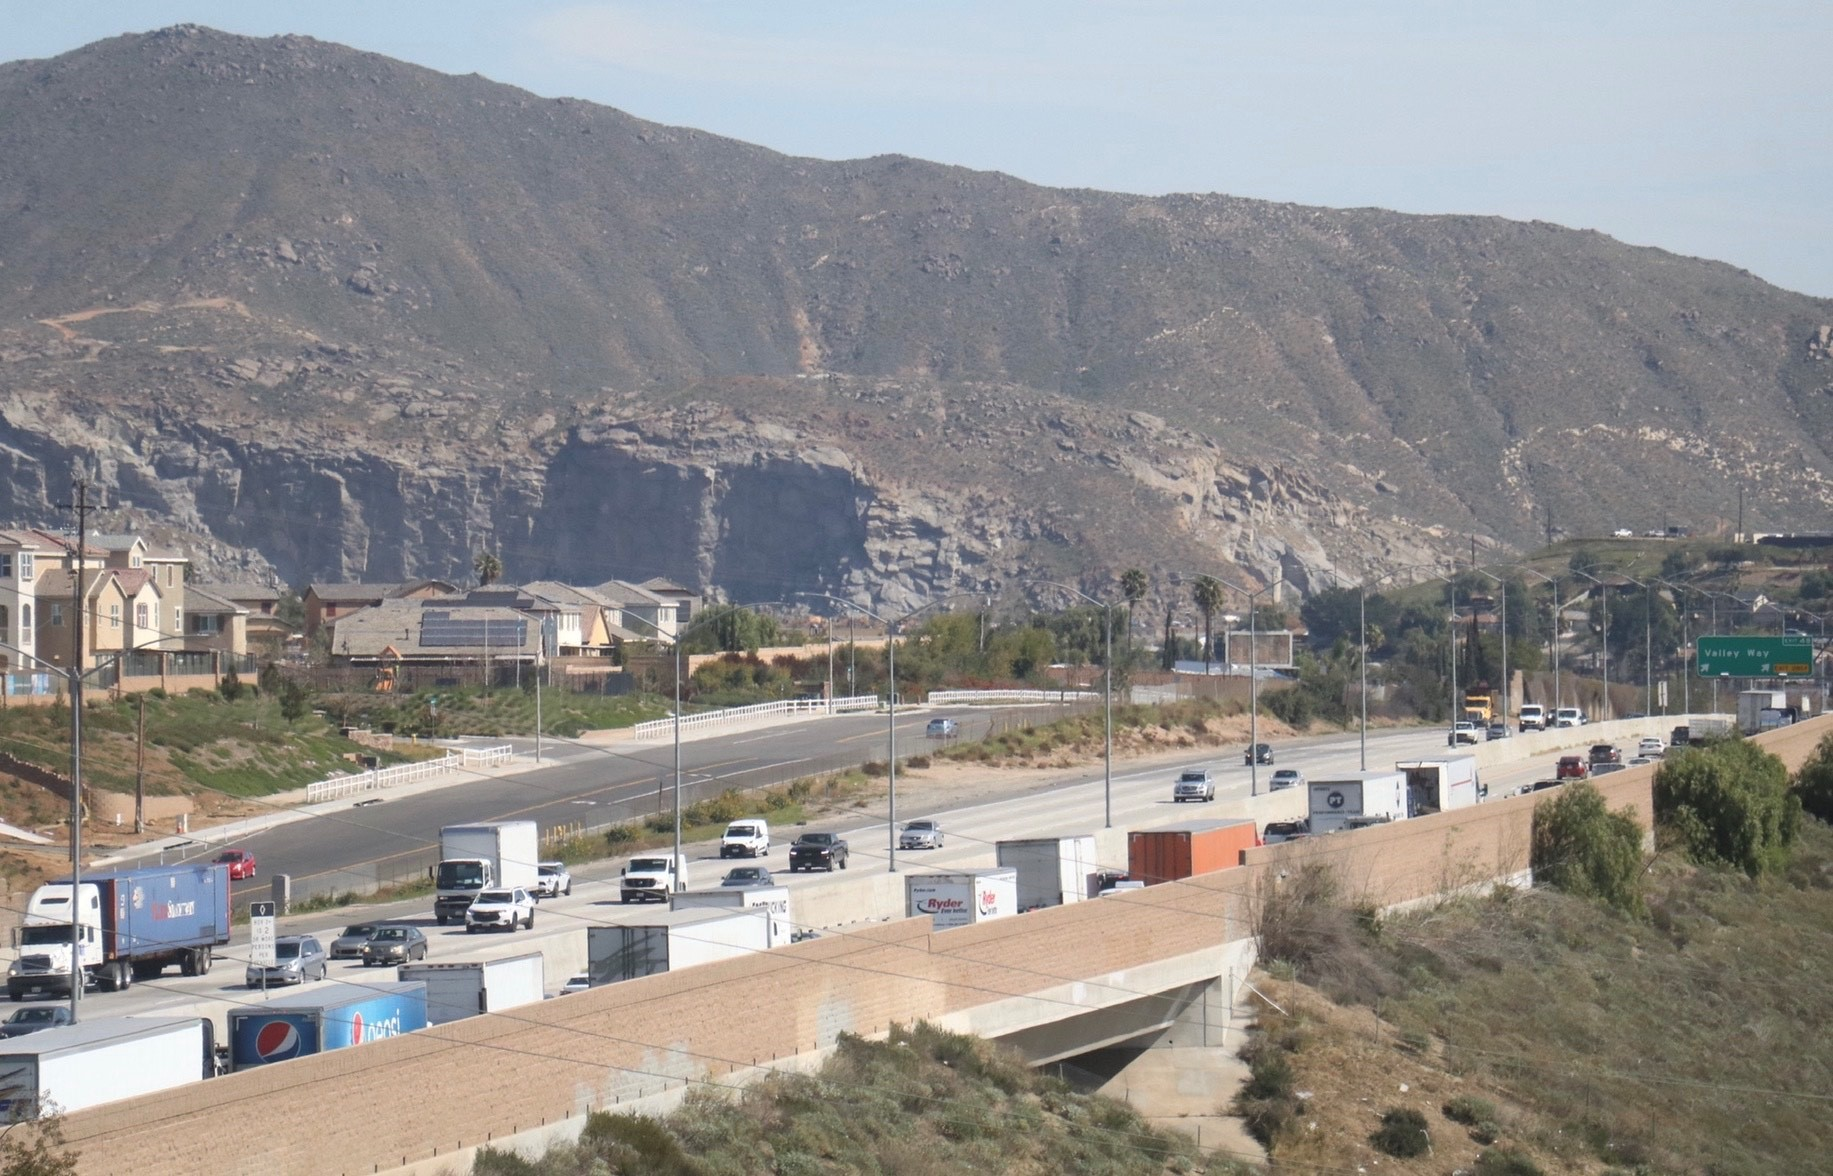 Image of the 60 freeway that runs through Jurupa Valley, California, near the offices of the Center for Community Action and Environmental Justice. In the background is a mountainscape. Beside the freeway are some multi-floor buildings. There are numerous trucks and a few cars on both directions of the freeway.